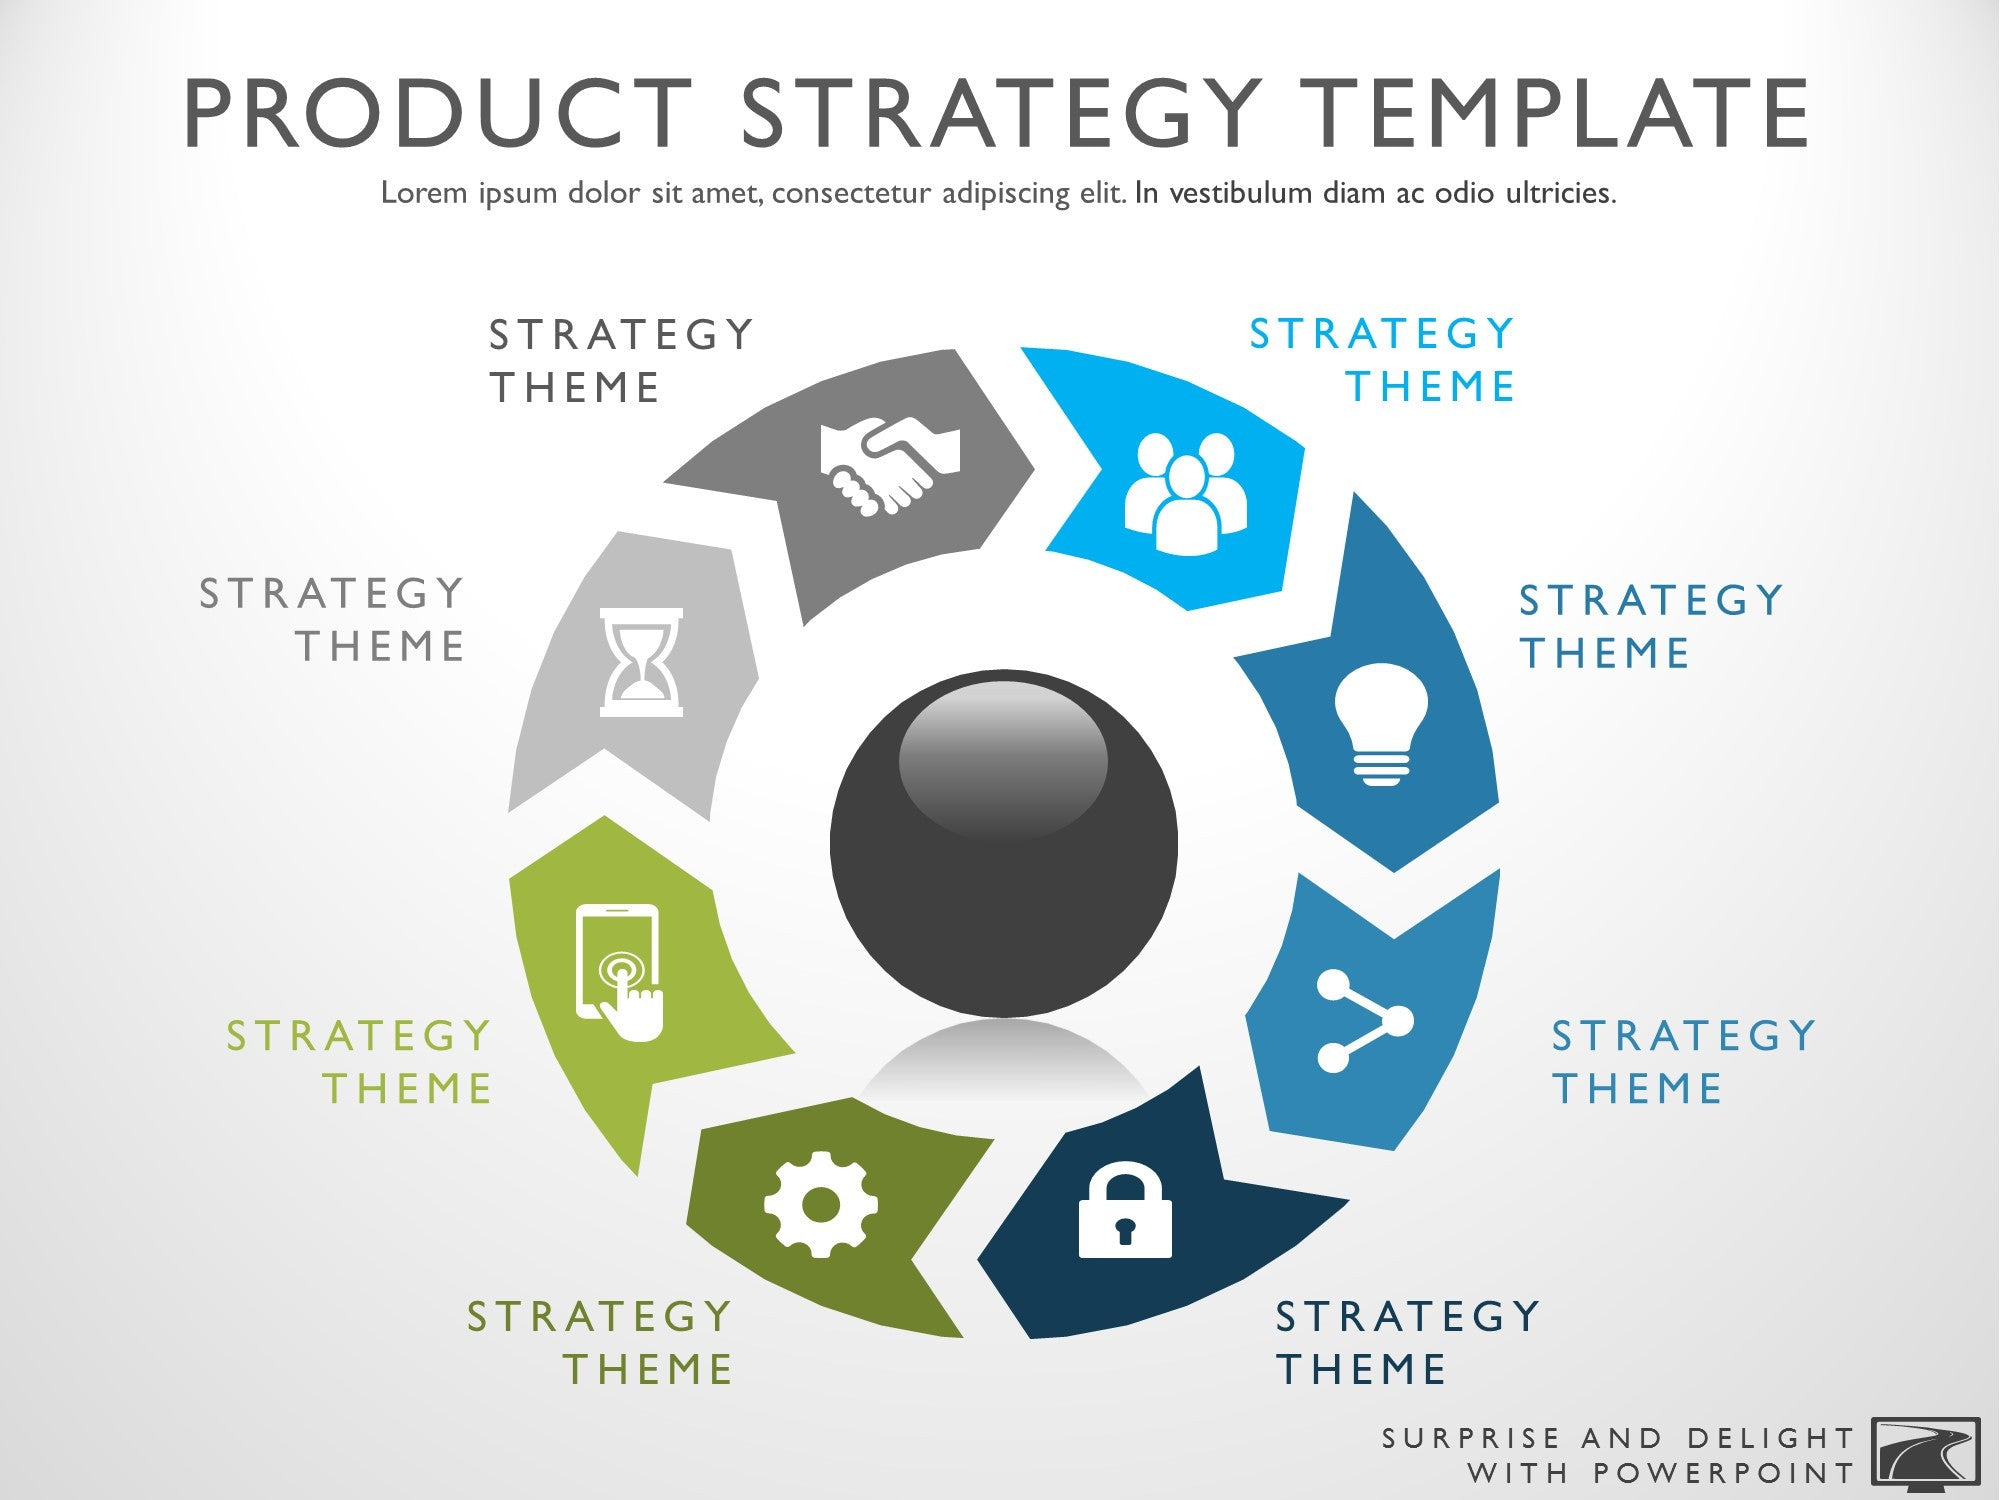 strategy templates template roadmap powerpoint diagram icon themes myproductroadmap management selection arrows circular steps